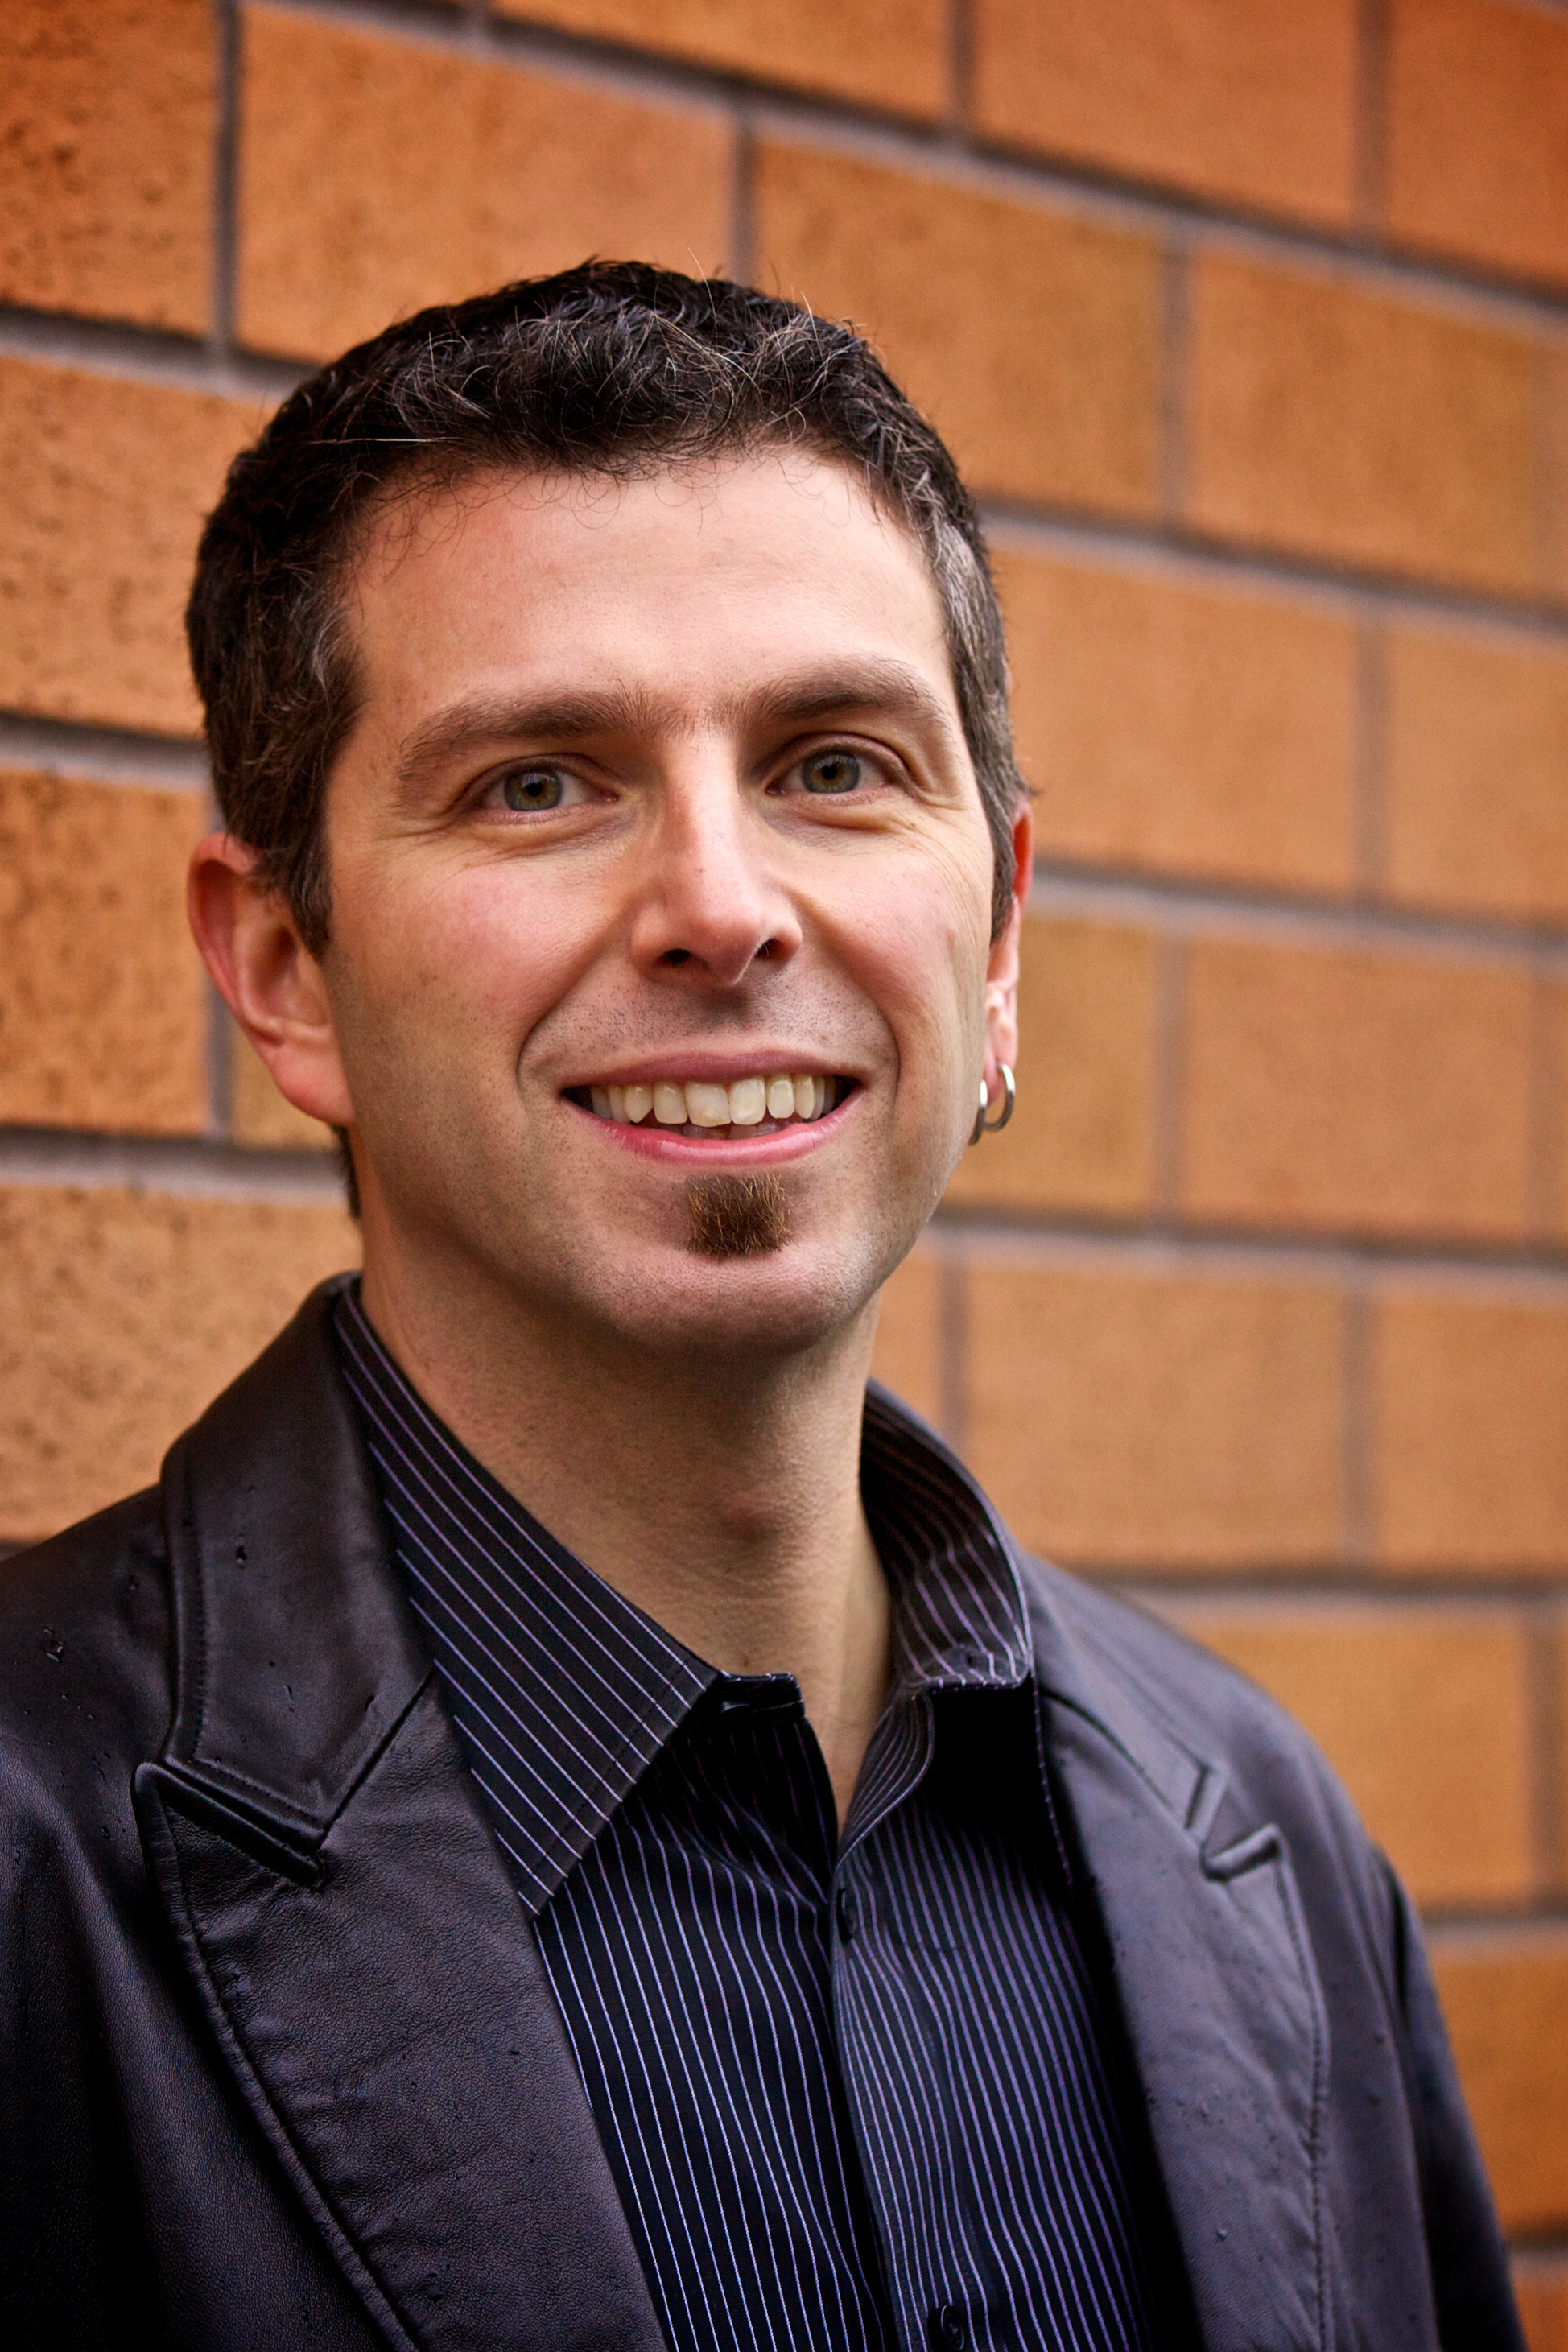 """William Hertling is the author of the award-winning novels Avogadro Corp: The Singularity is Closer than it Appears, A.I. Apocalypse, and The Last Firewall. These near-term science-fiction novels explore the emergence of artificial intelligence, coexistence of humans and smart machines, and the impact of social reputation, technological unemployment, and other near-future issues. His novels have been called """"frighteningly plausible,"""" """"tremendous,"""" and """"must read."""""""